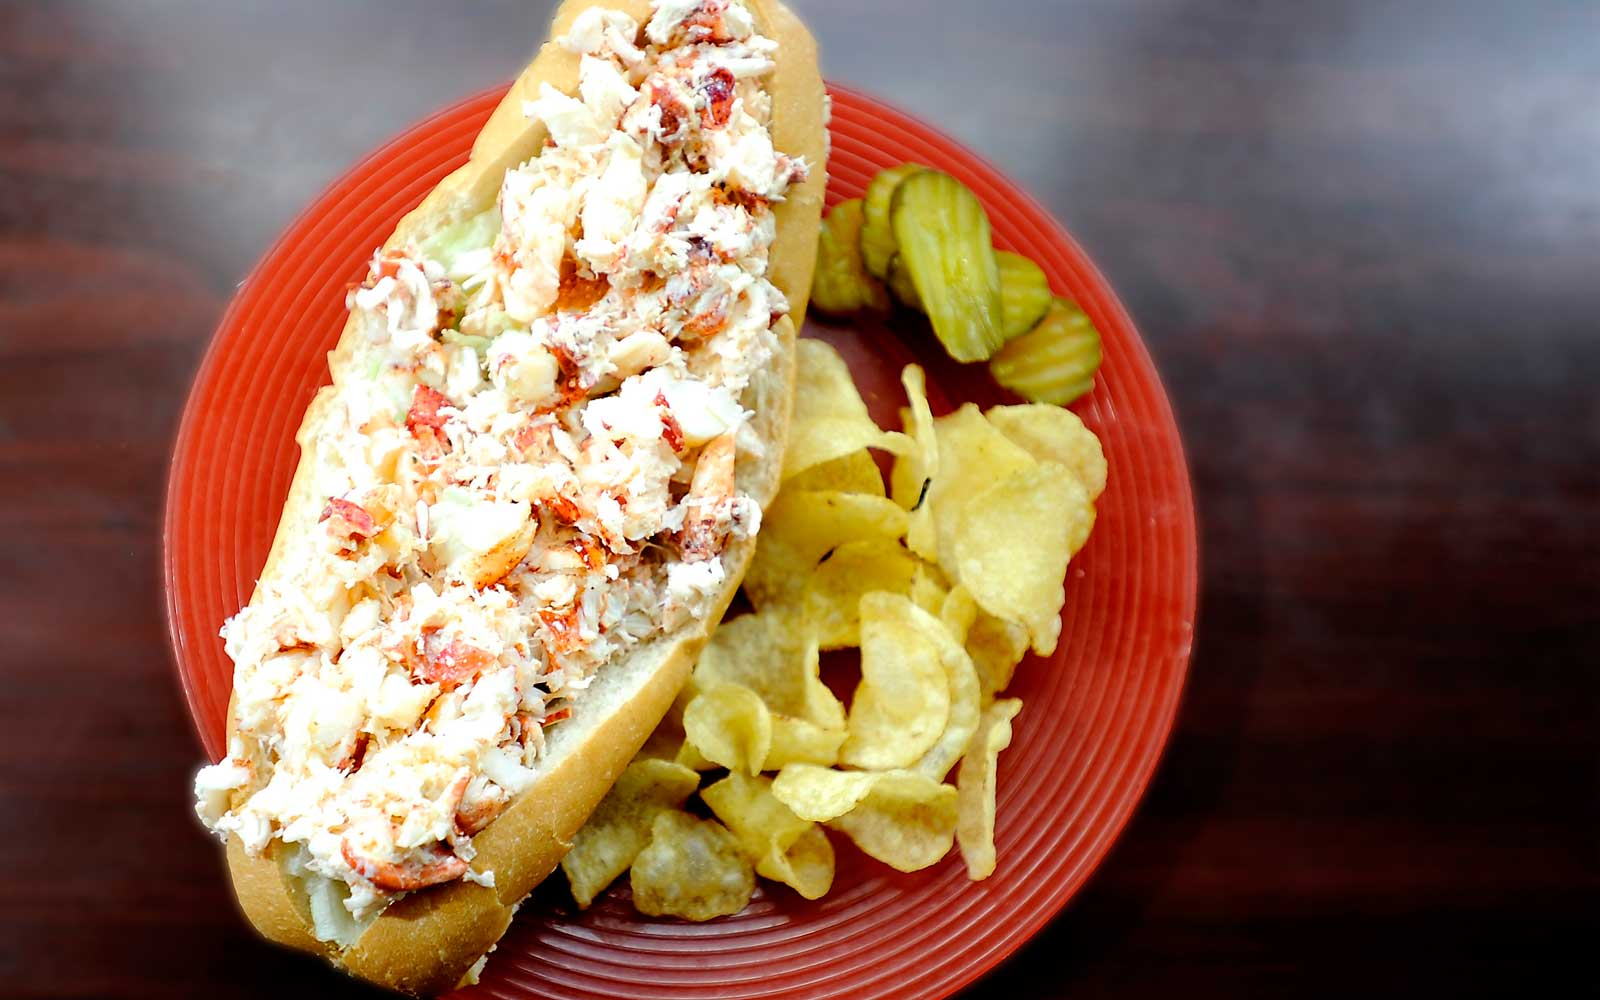 Best Lobster Rolls According to Yelp Reviews